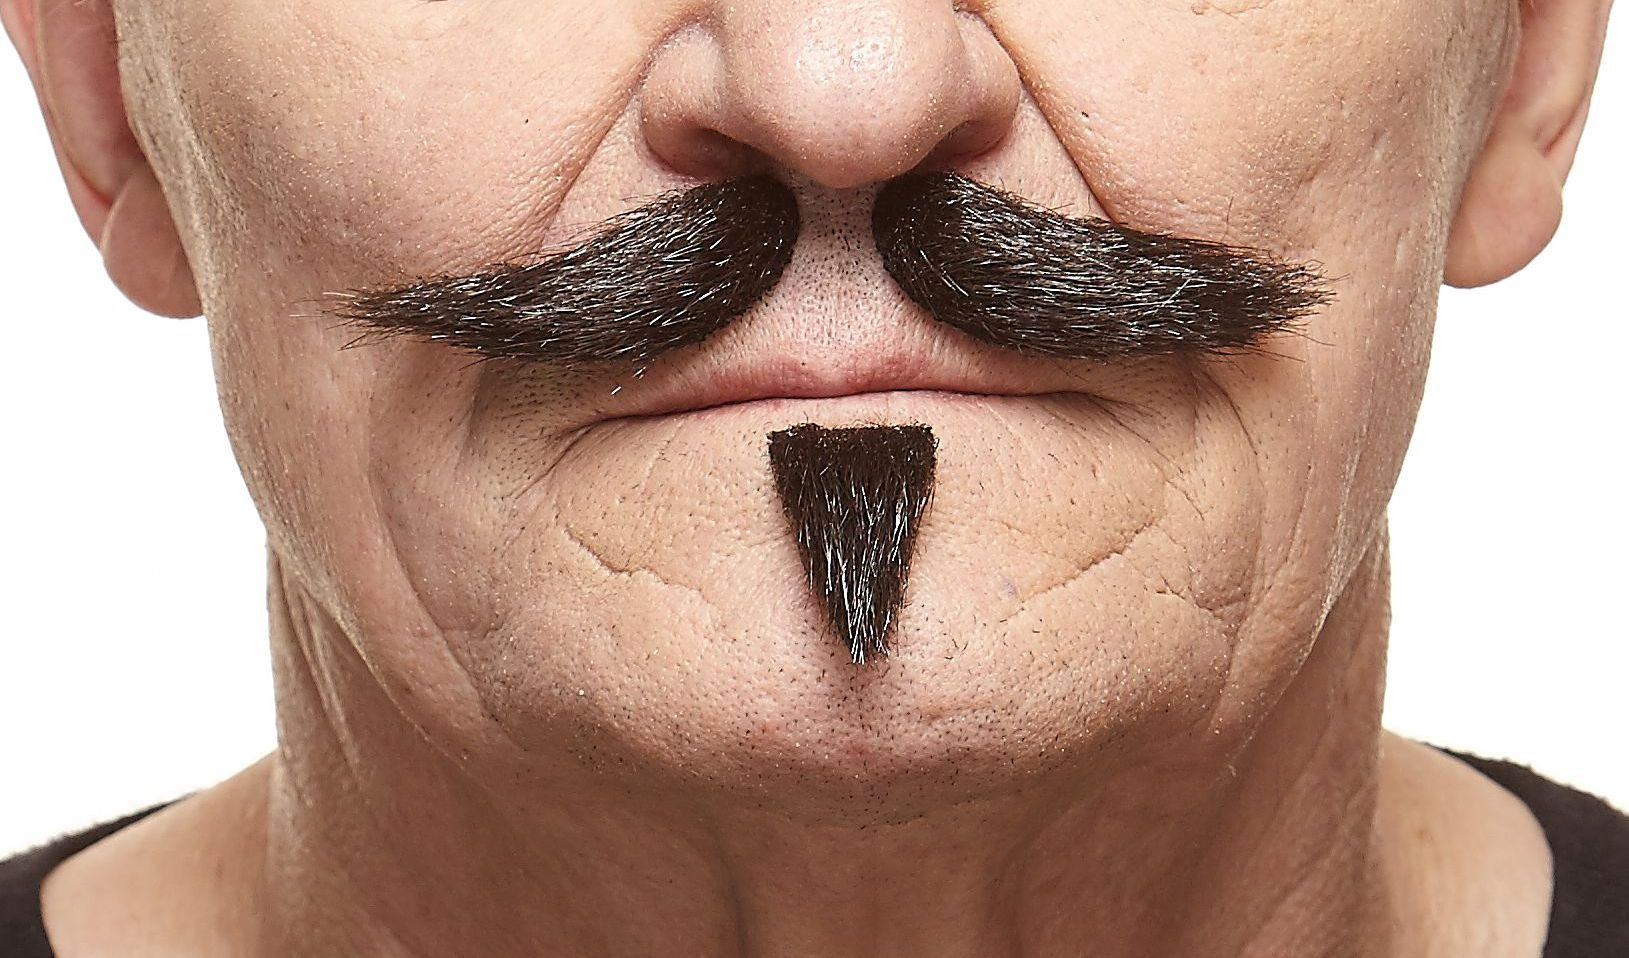 Mustaches Self Adhesive, Novelty, Fake Gentleman and Soul Patch, Black Lustrous Color